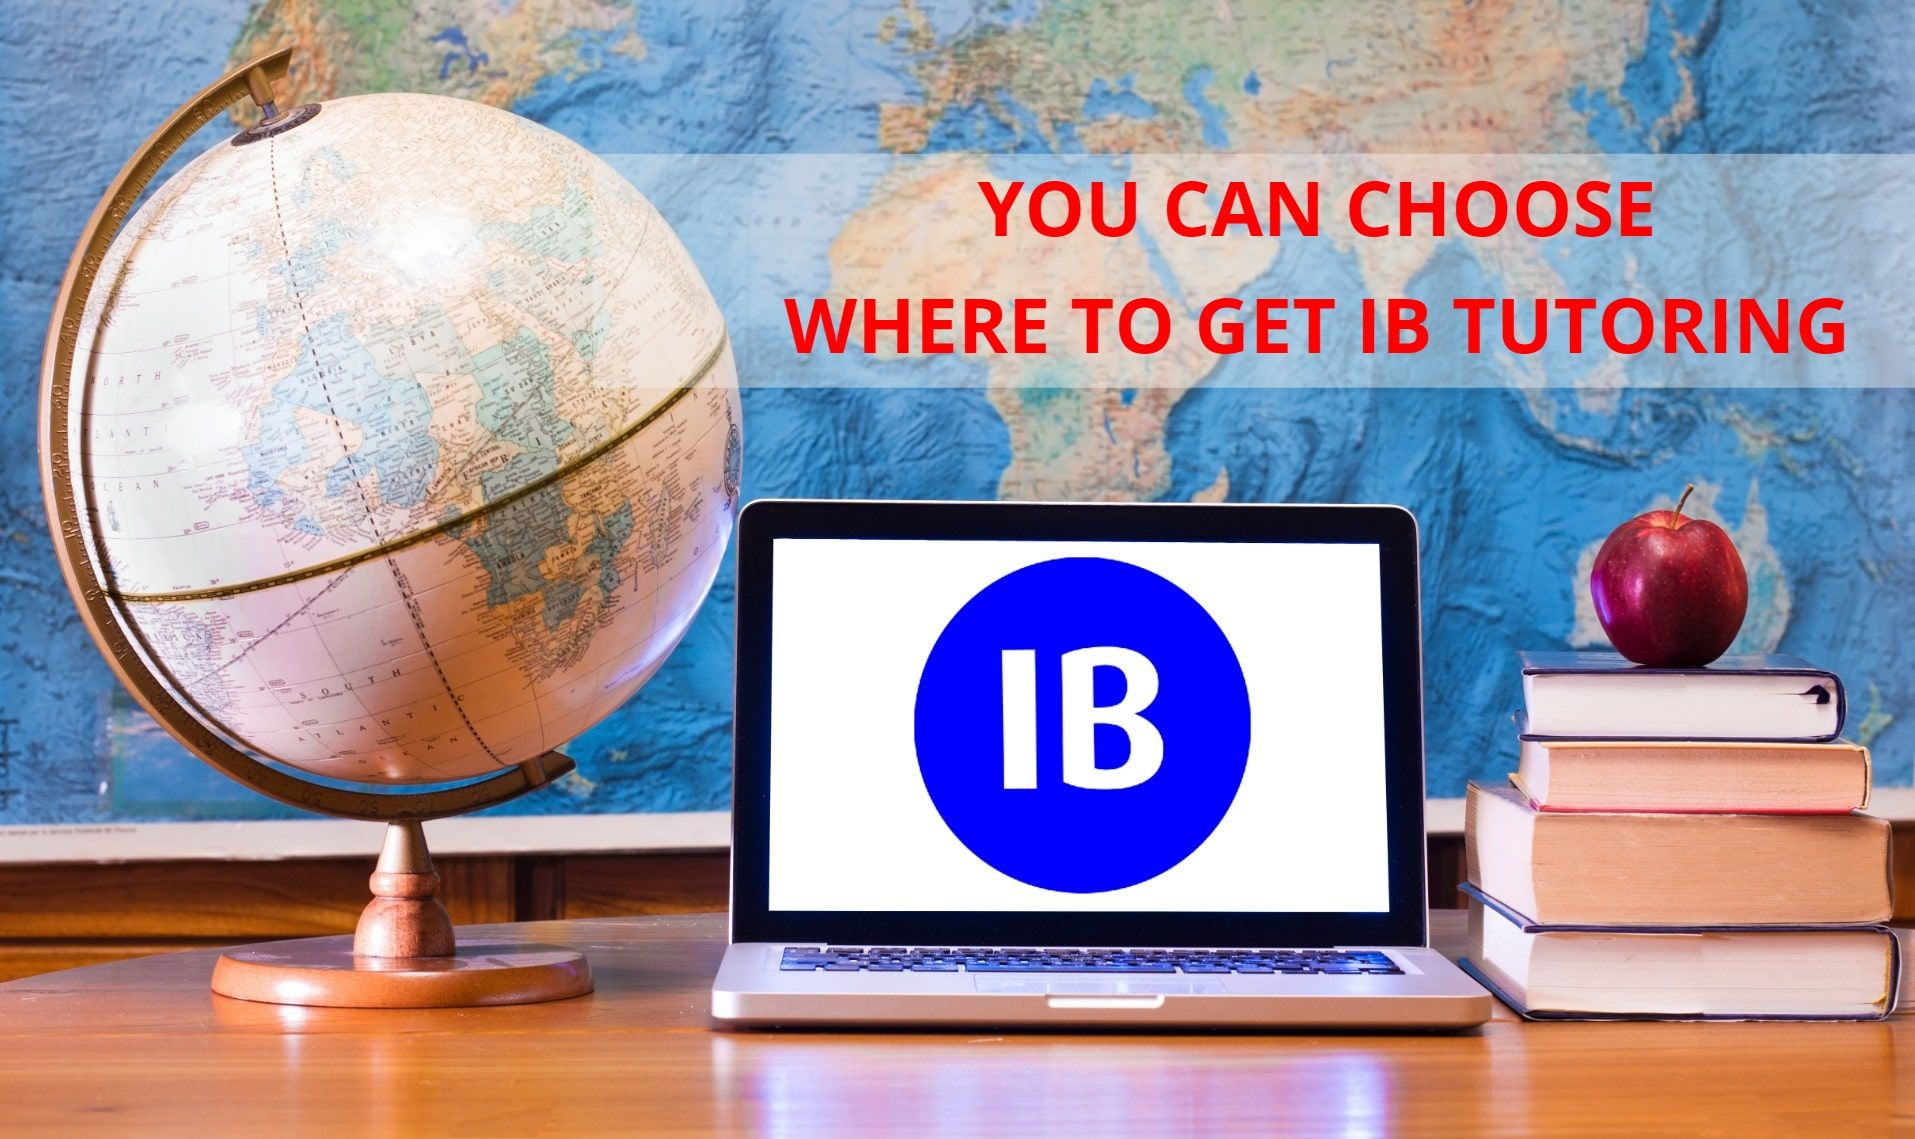 THE FIRST IB TUTORING SERVICE IN GREATER VANCOUVER WITH HACK YOUR COURSE